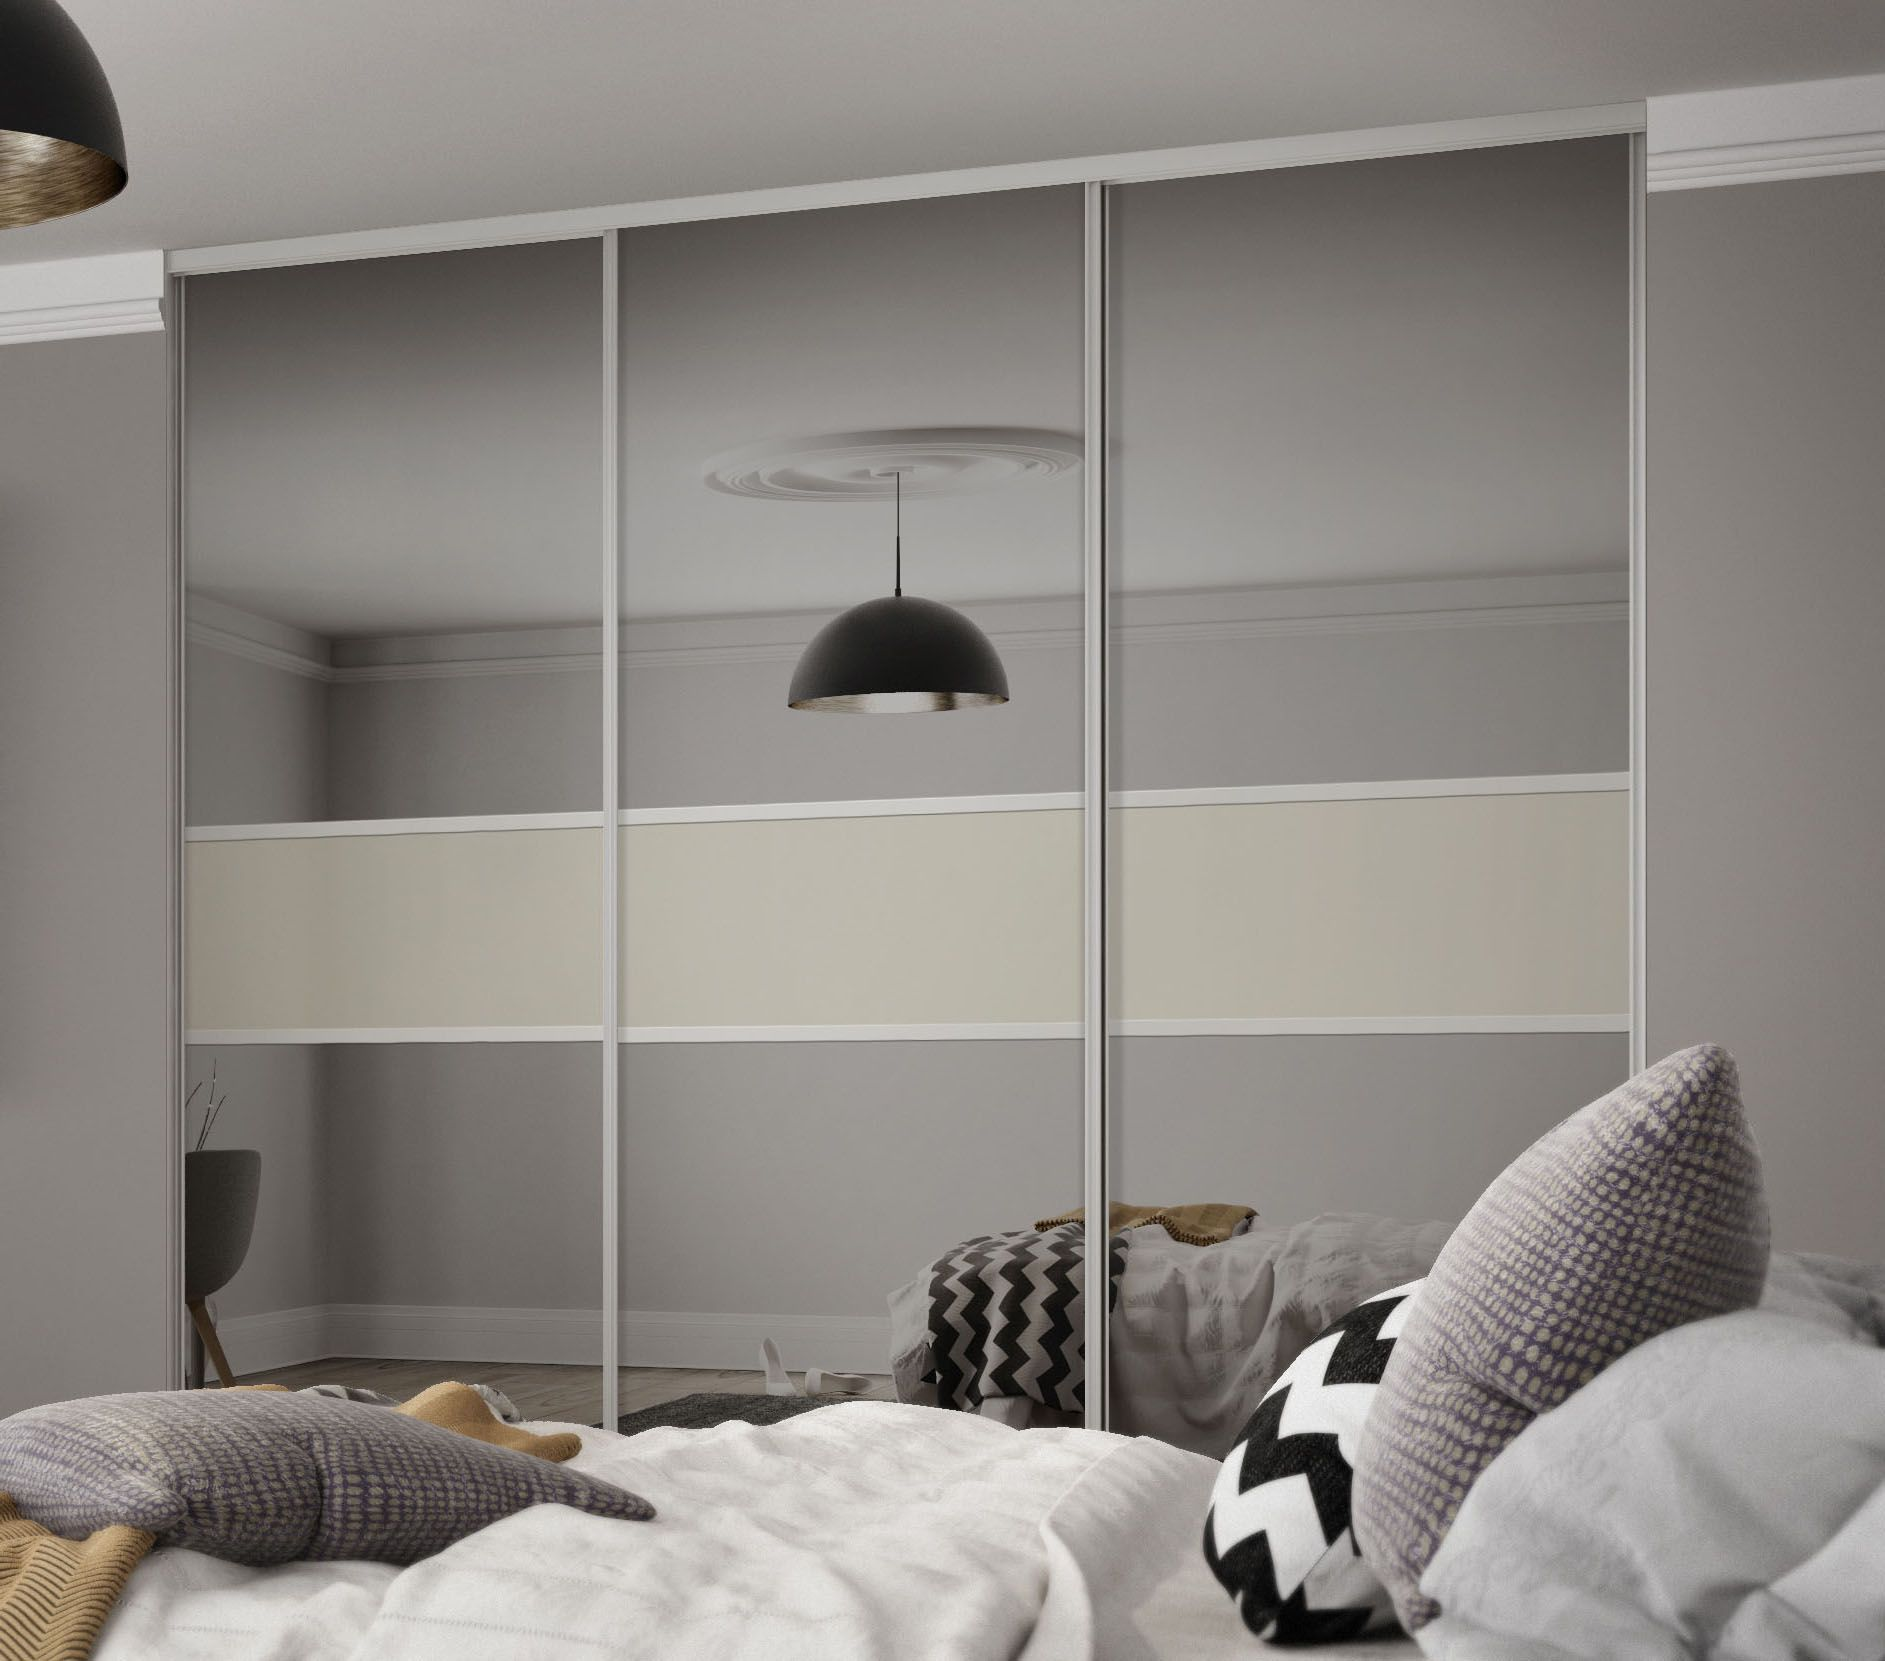 Clic 3 Panel Fineline Sliding Wardrobe Doors In Grey Mirror And Soft White Gl With Silver Frame